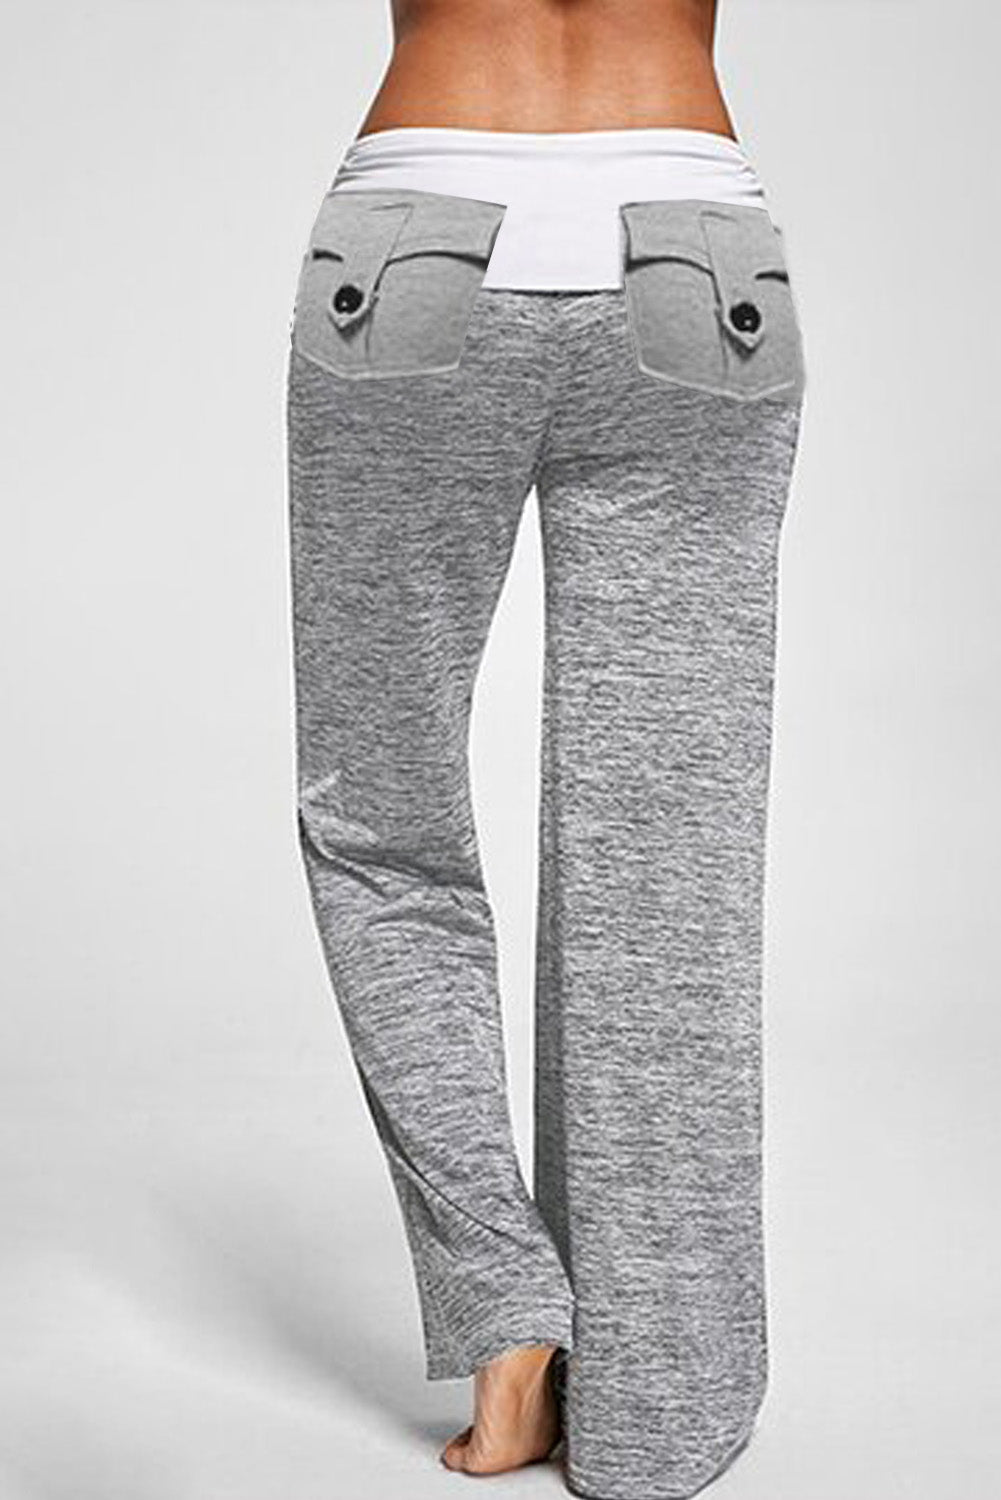 Gray Drawstring Pockets Stretch Wide Leg Yoga Pant Pants & Culotte Discount Designer Fashion Clothes Shoes Bags Women Men Kids Children Black Owned Business